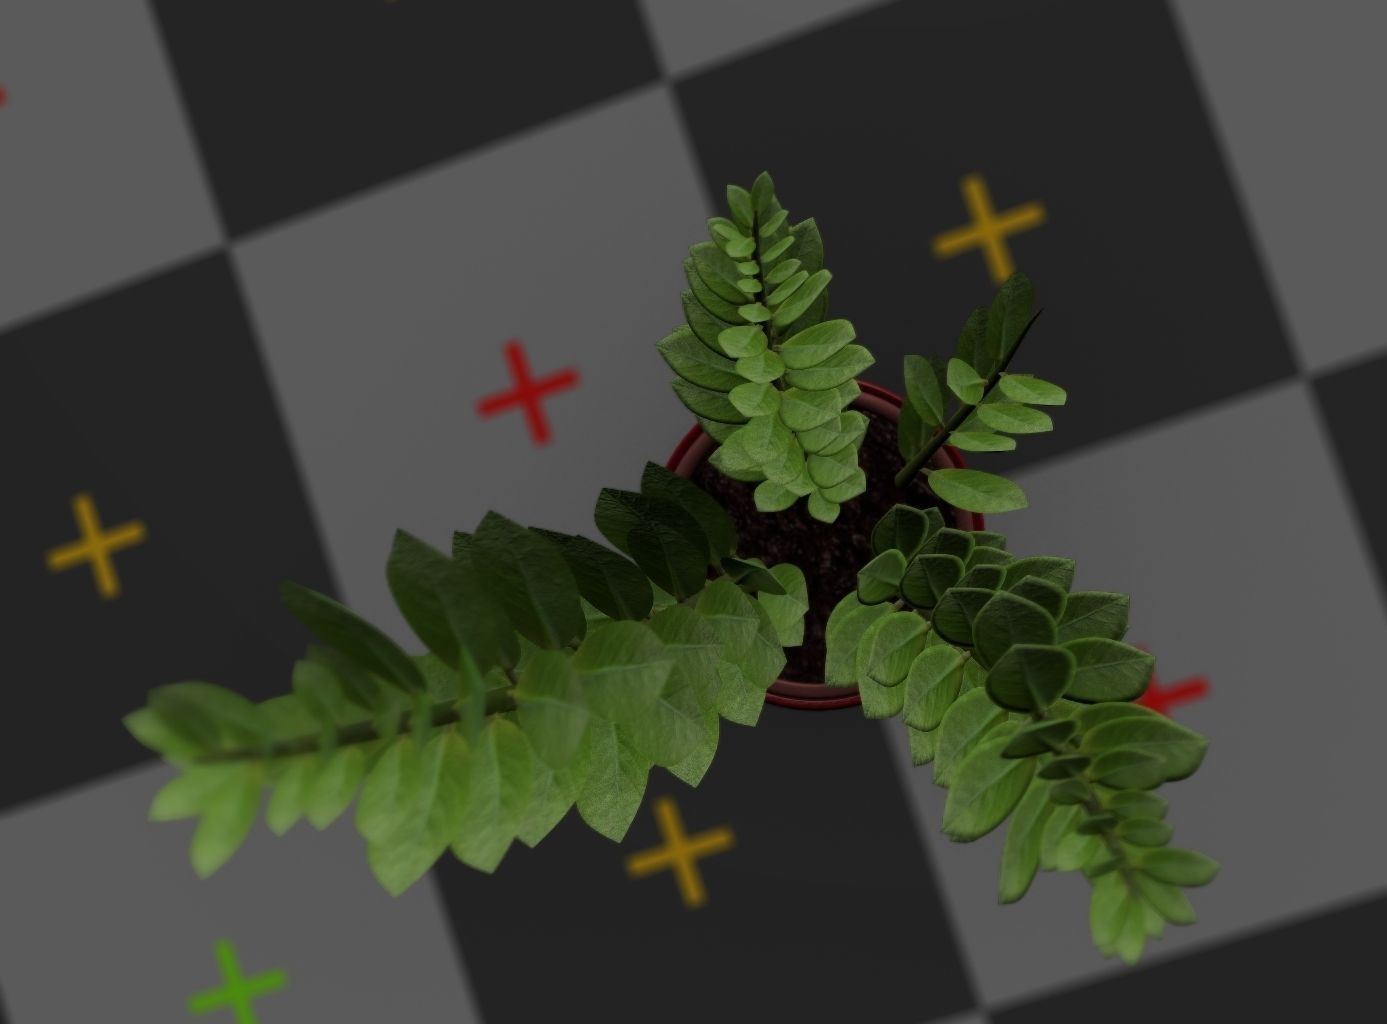 3d-model-indoor-plant-rigged-low-poly-jpg-21